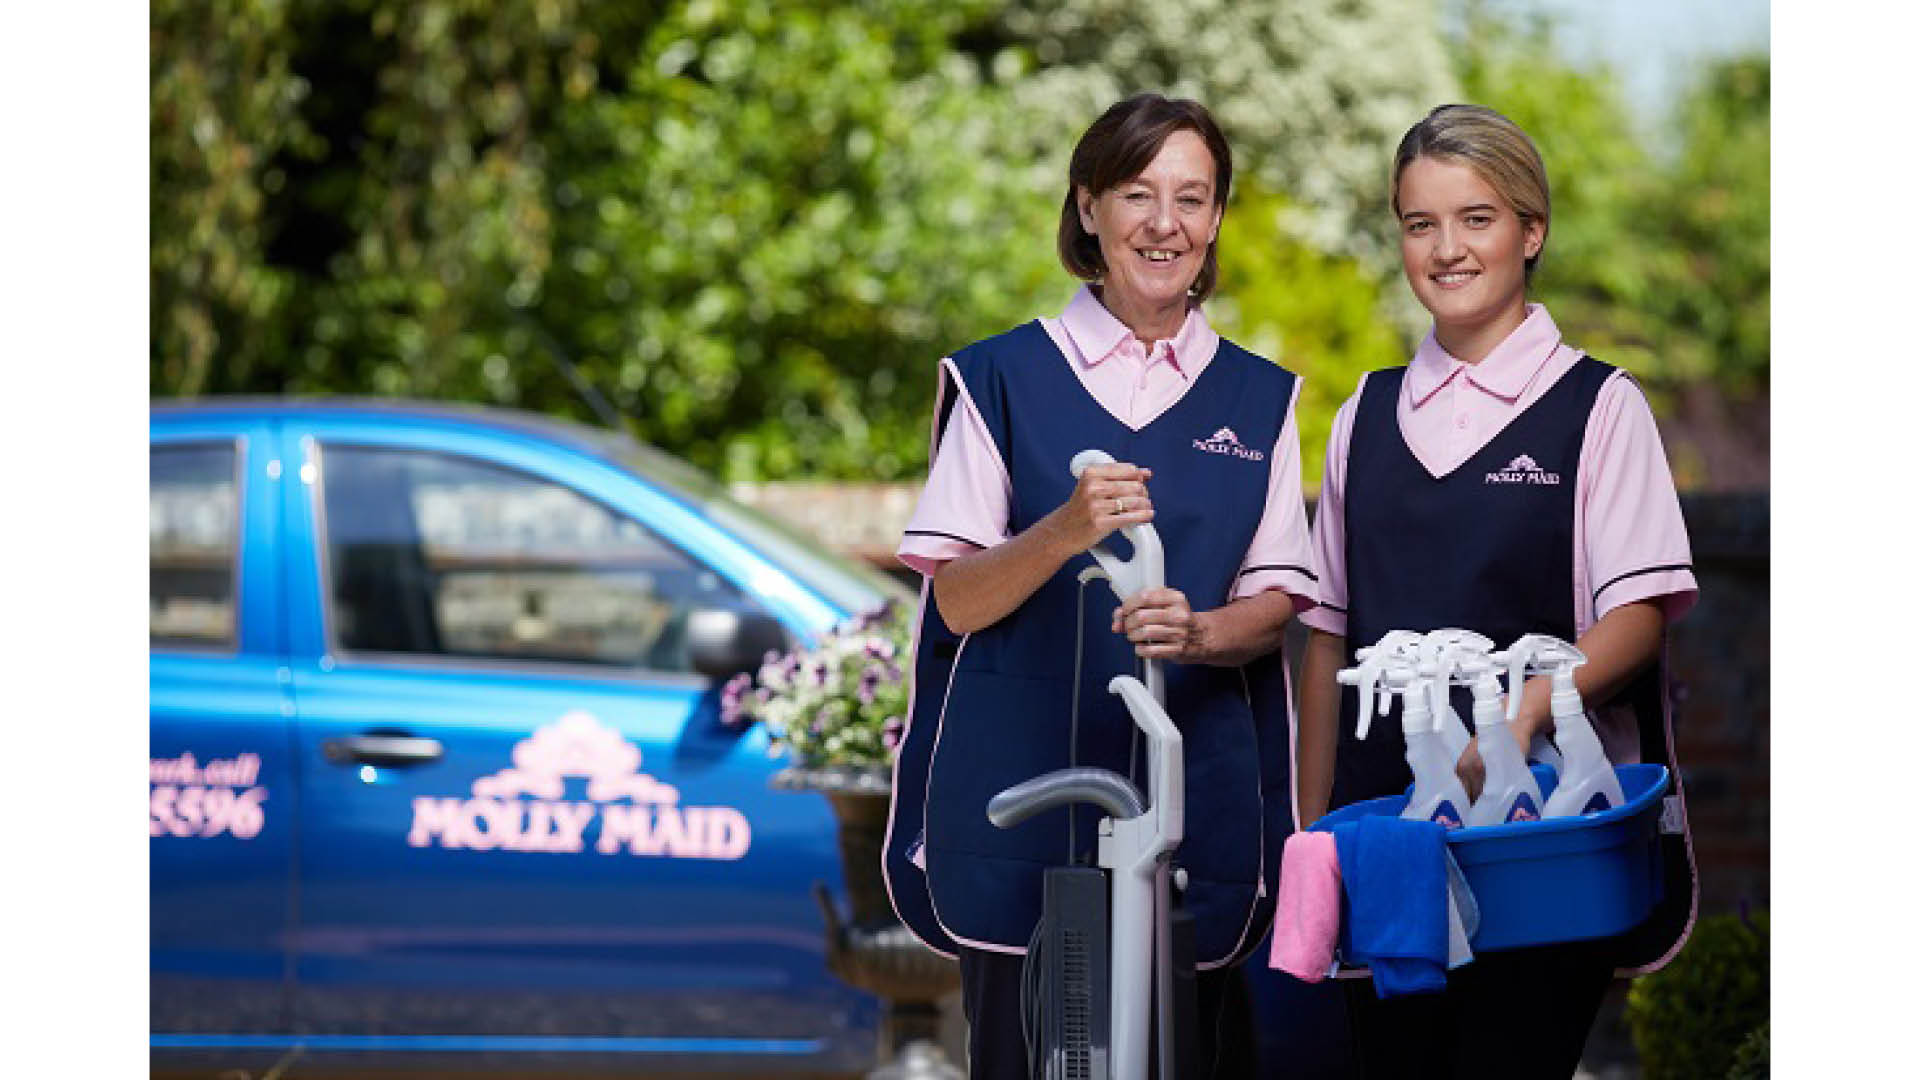 Molly Maid: Robust procedures help cleaning business get back into customers' homes